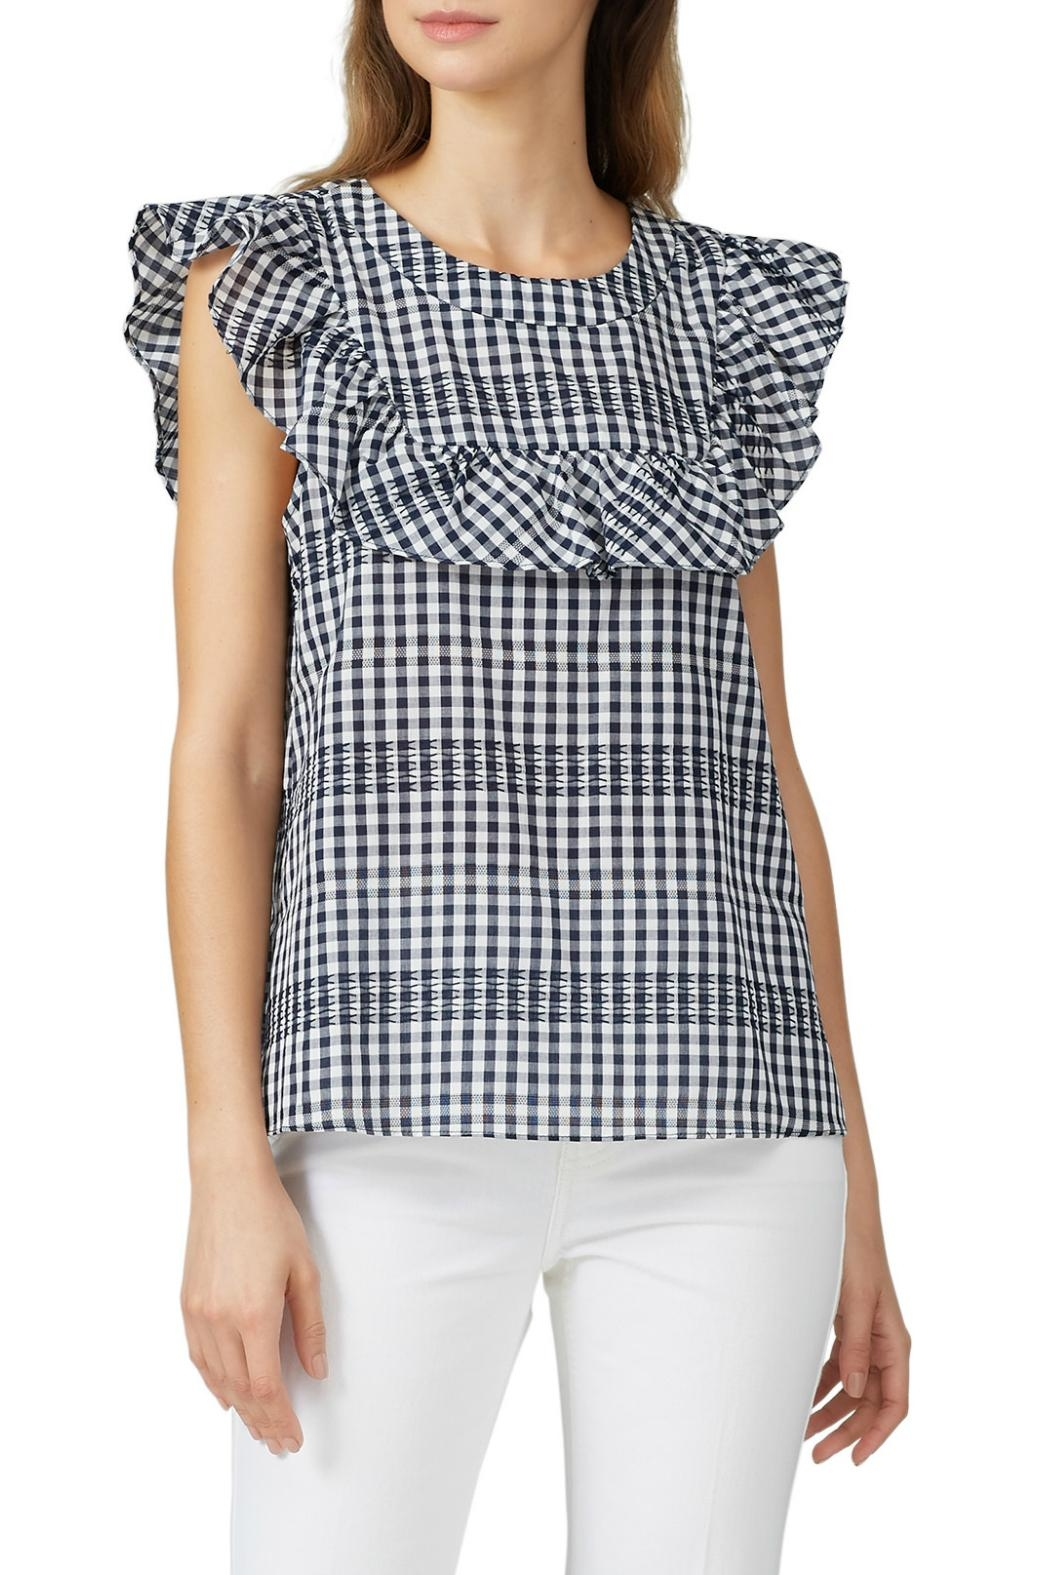 Waverly Grey Ruffle Gingham Top - Front Full Image